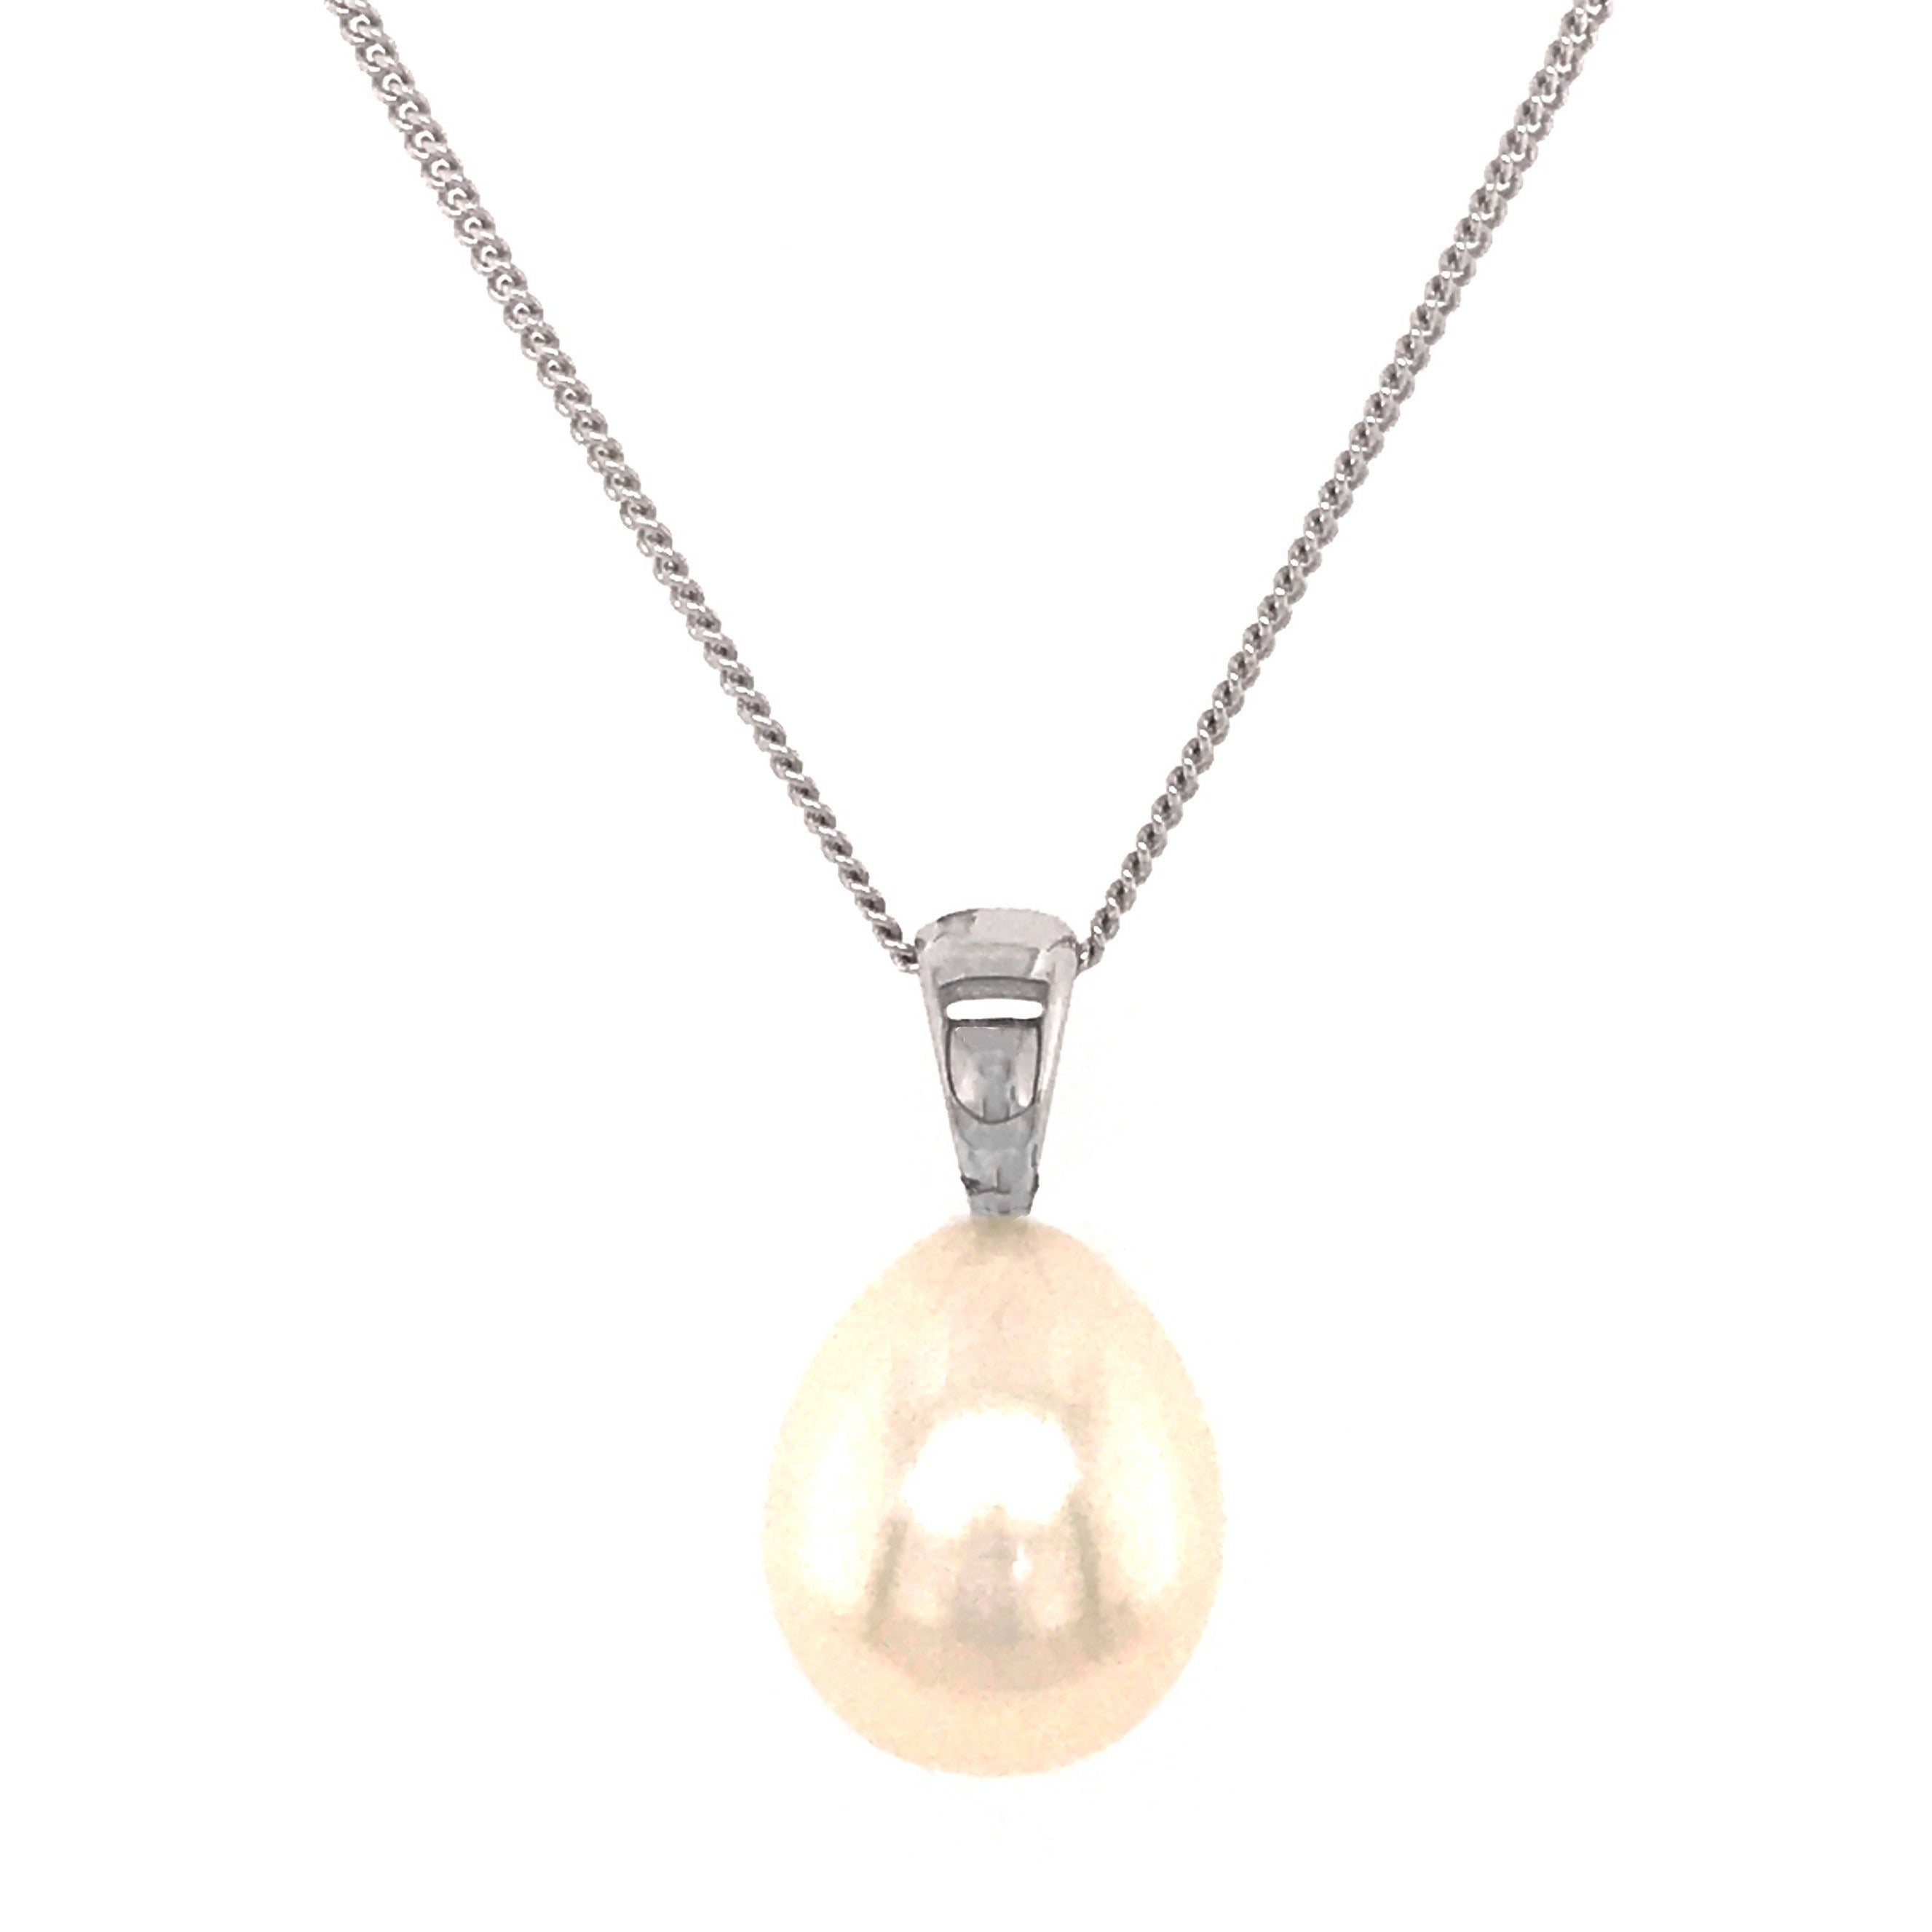 9ct White gold Freshwater Drop Pendant & Chain